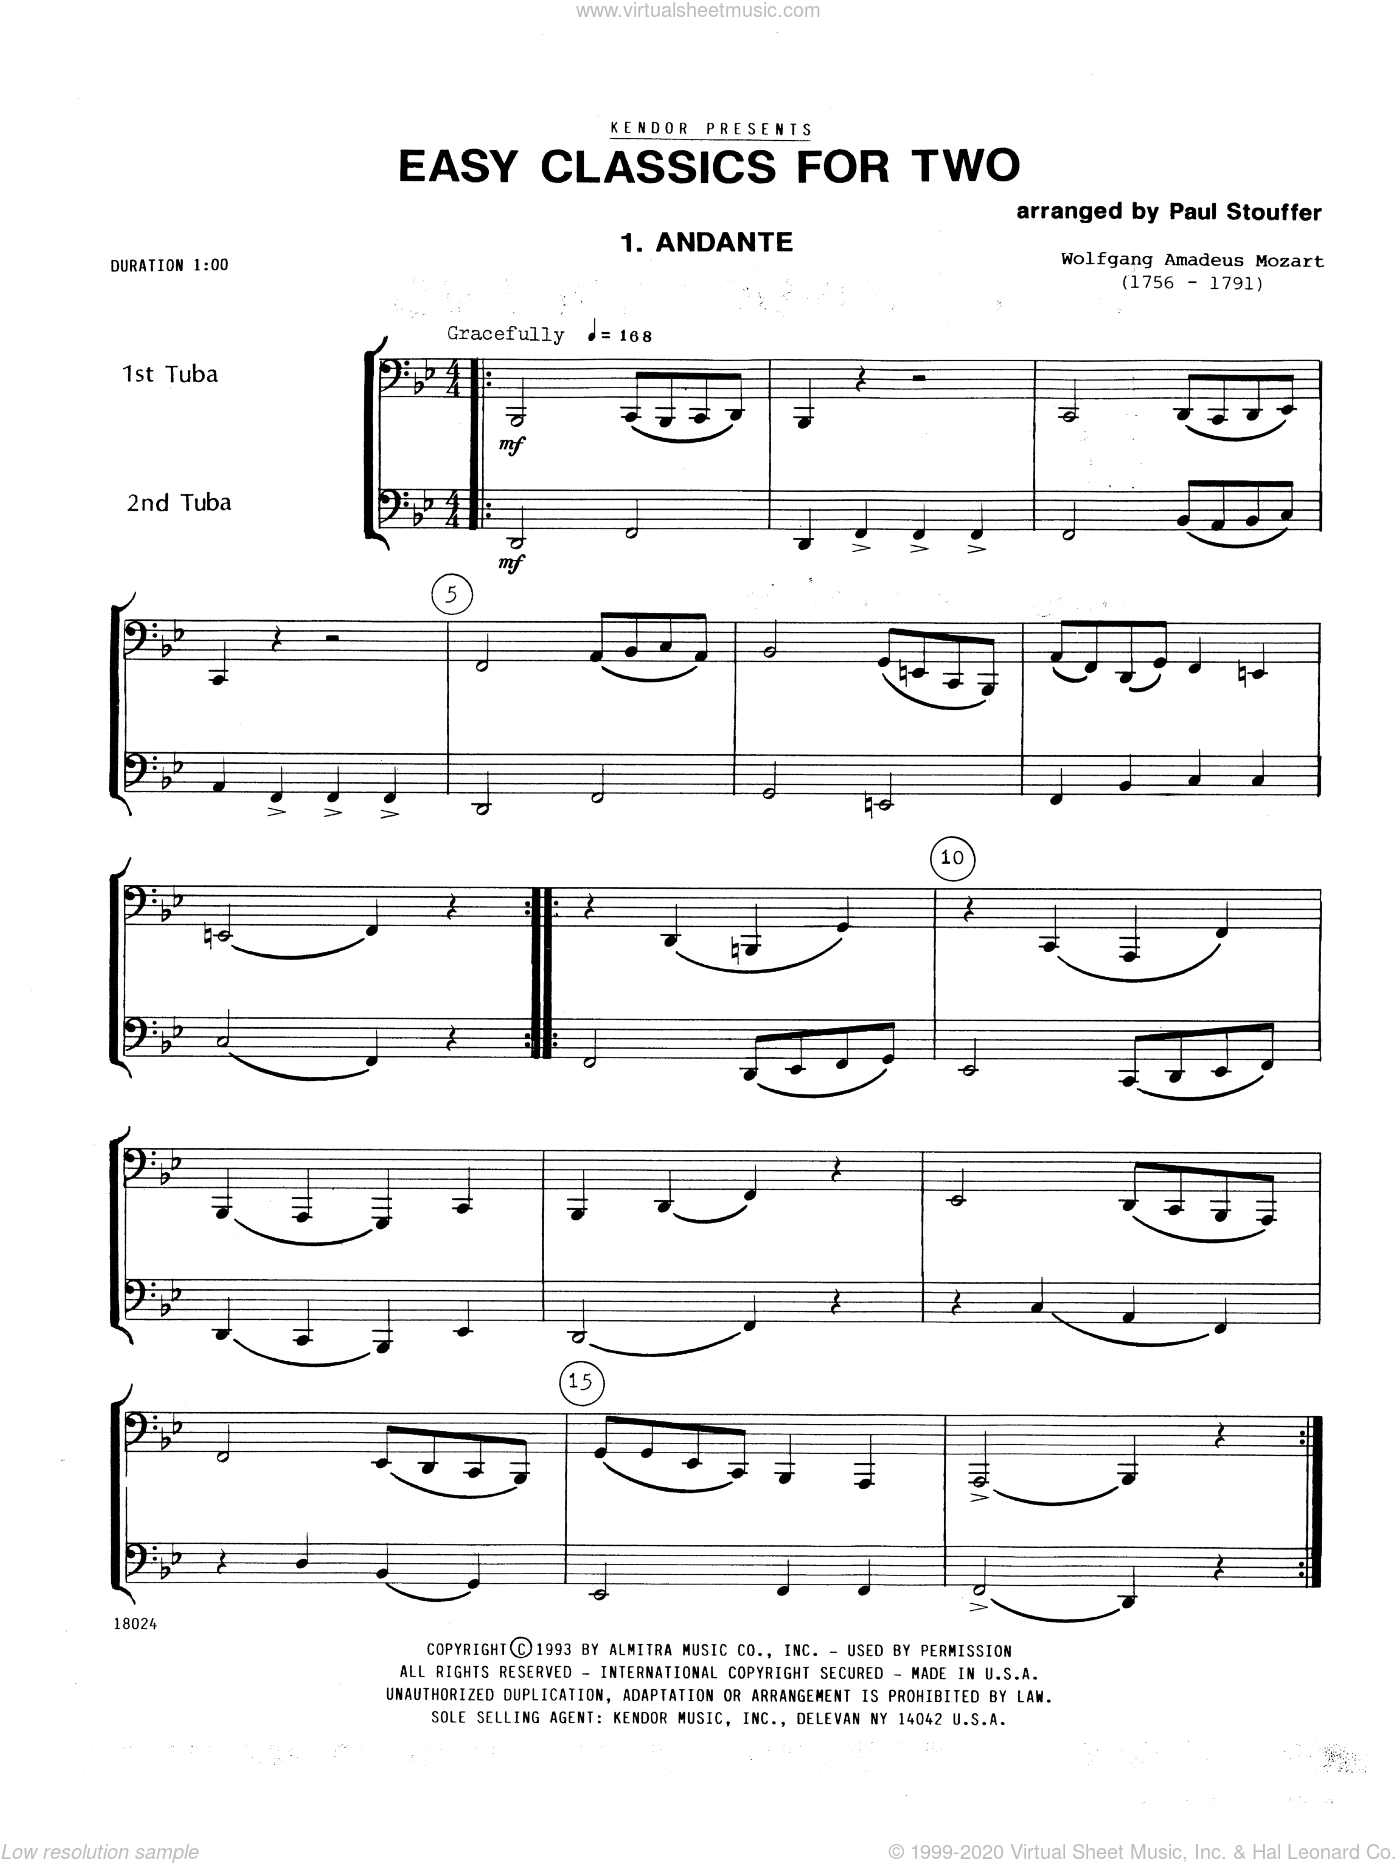 Easy Classics For Two sheet music for two tubas by Stouffer, classical score, intermediate duet